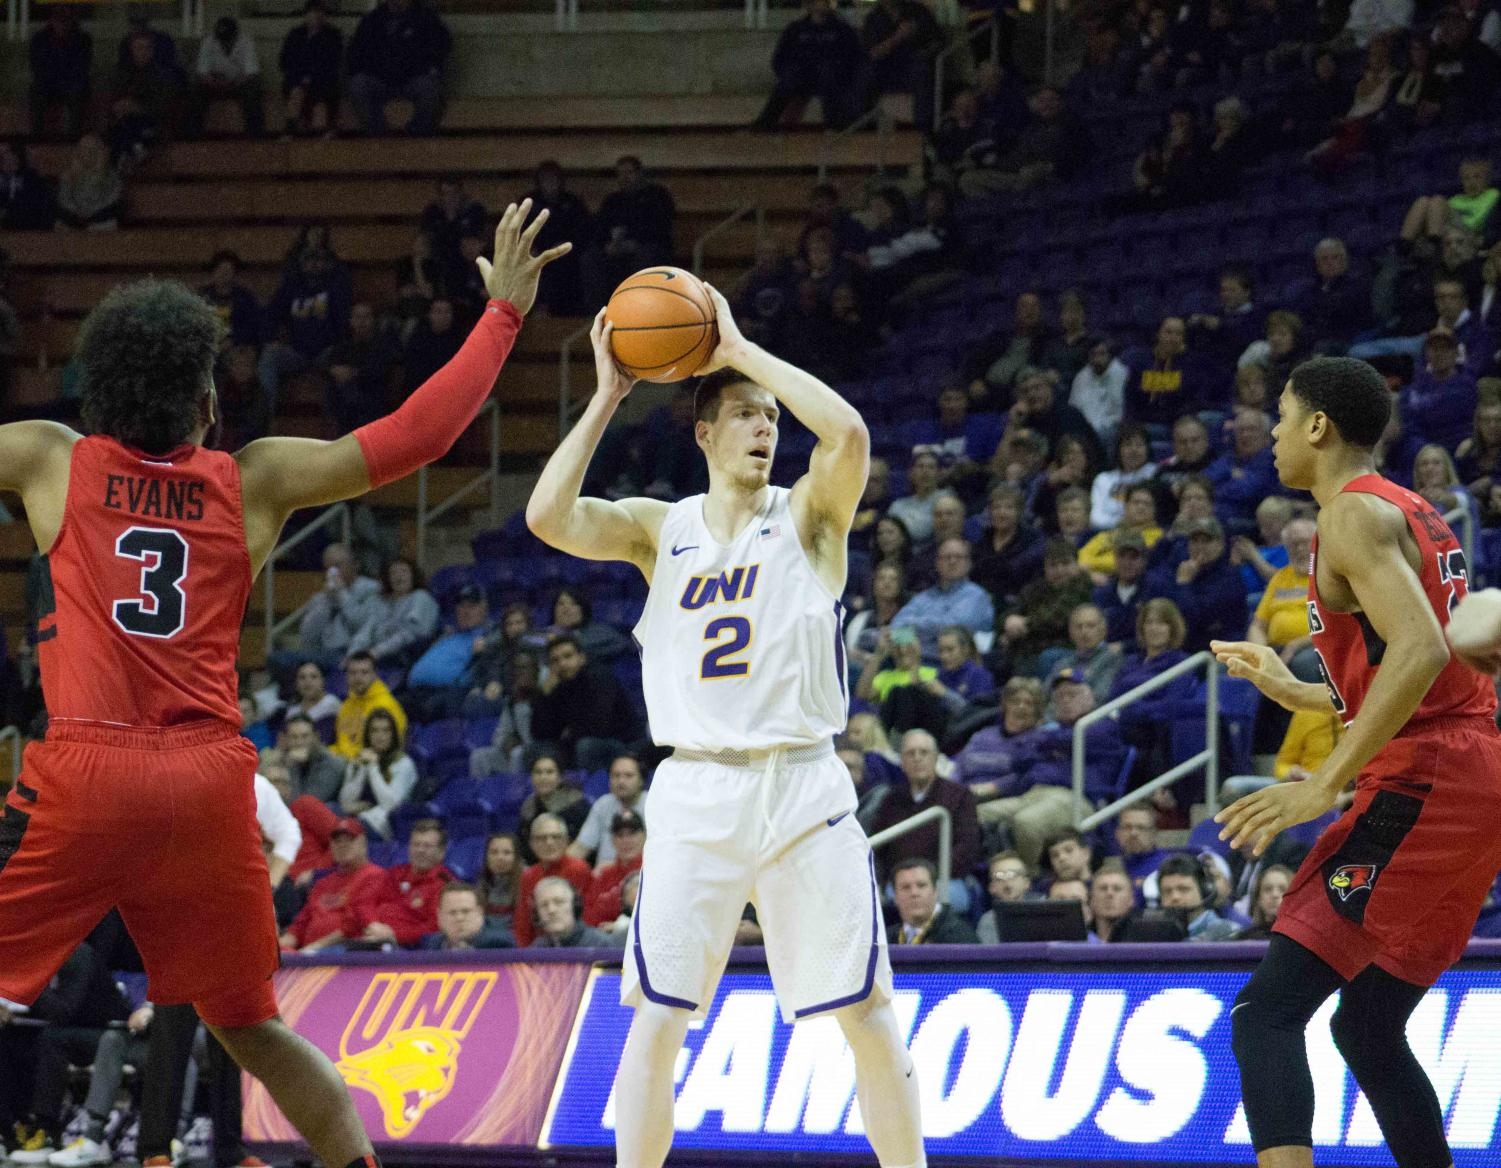 Klint Carlson (2) waits at the top of the arc looking for an open pass.